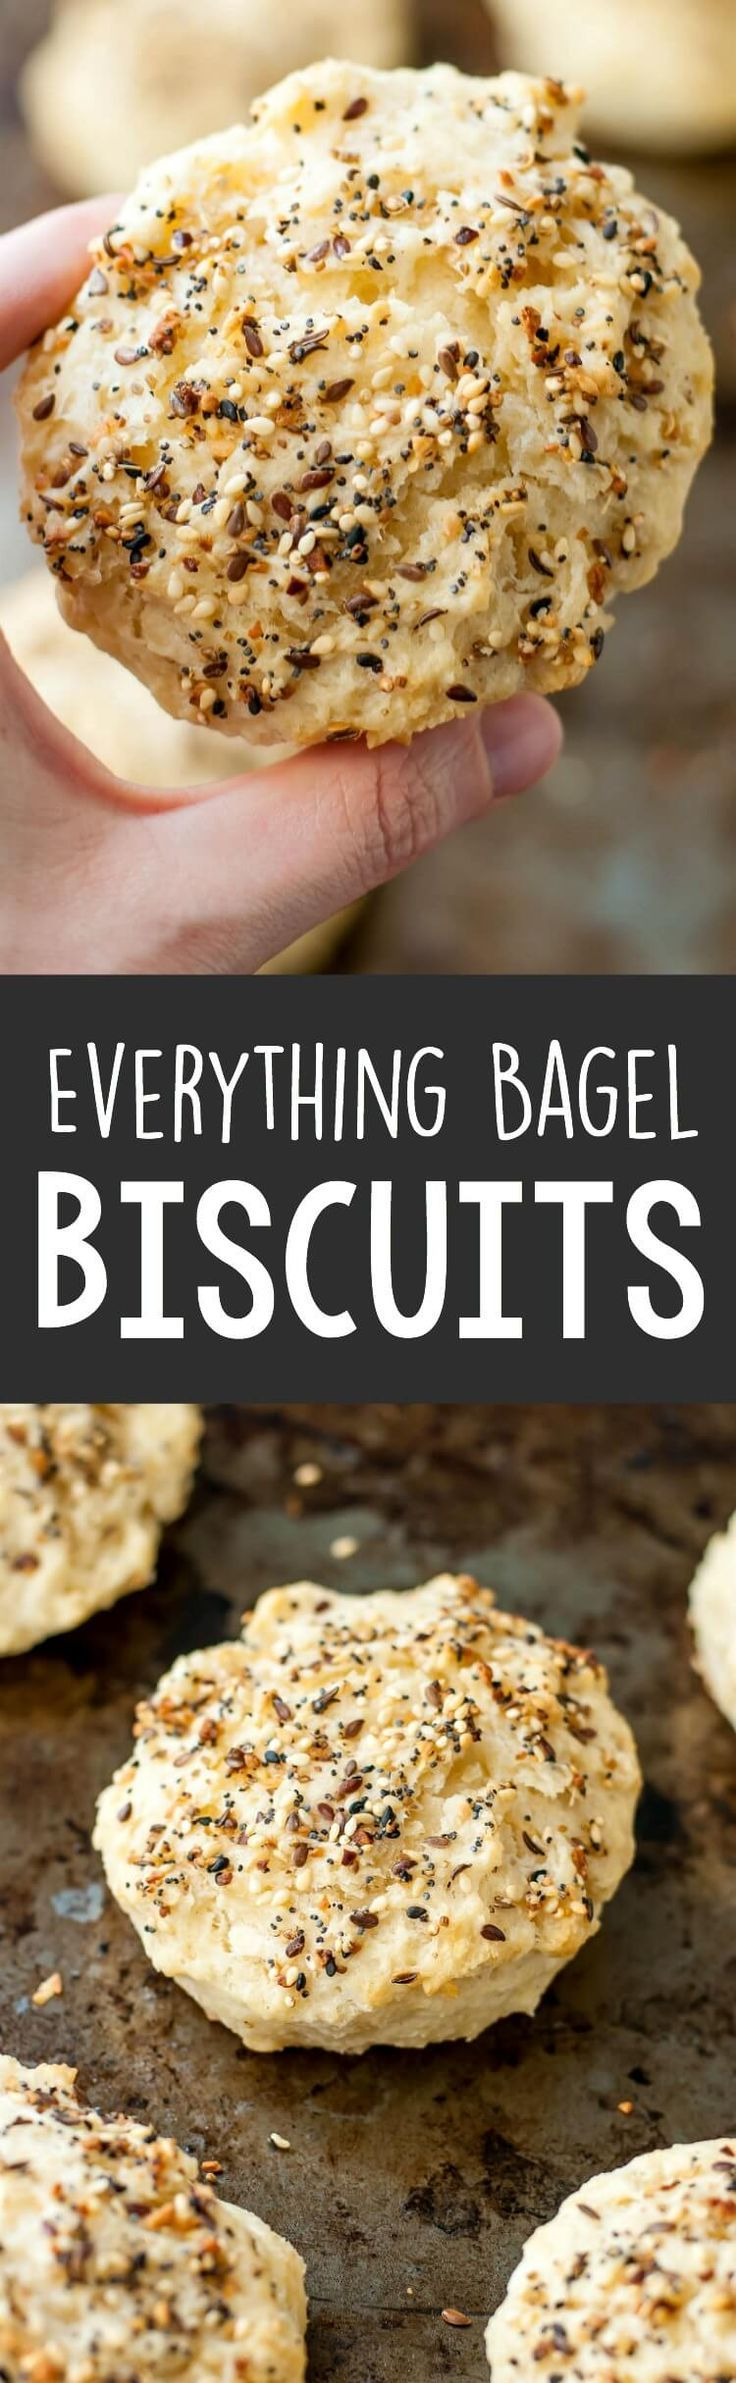 Everything Bagel Biscuits